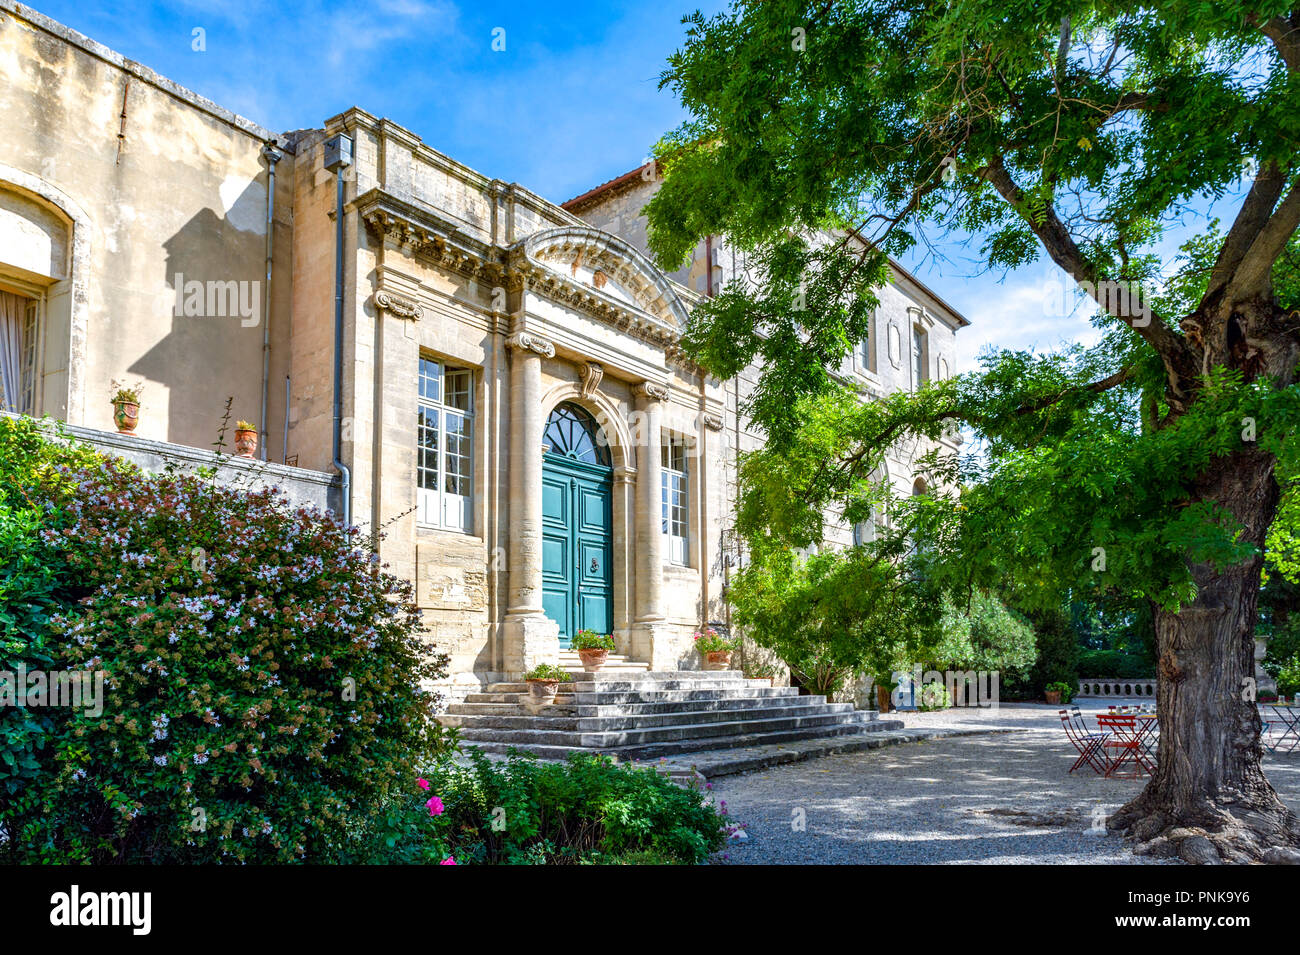 France. Gard (30). Villeneuve-Les-Avignon. Abbey Saint-André, Benedictine abbey located at the top of Mount Andaon. The abbey palace - Stock Image